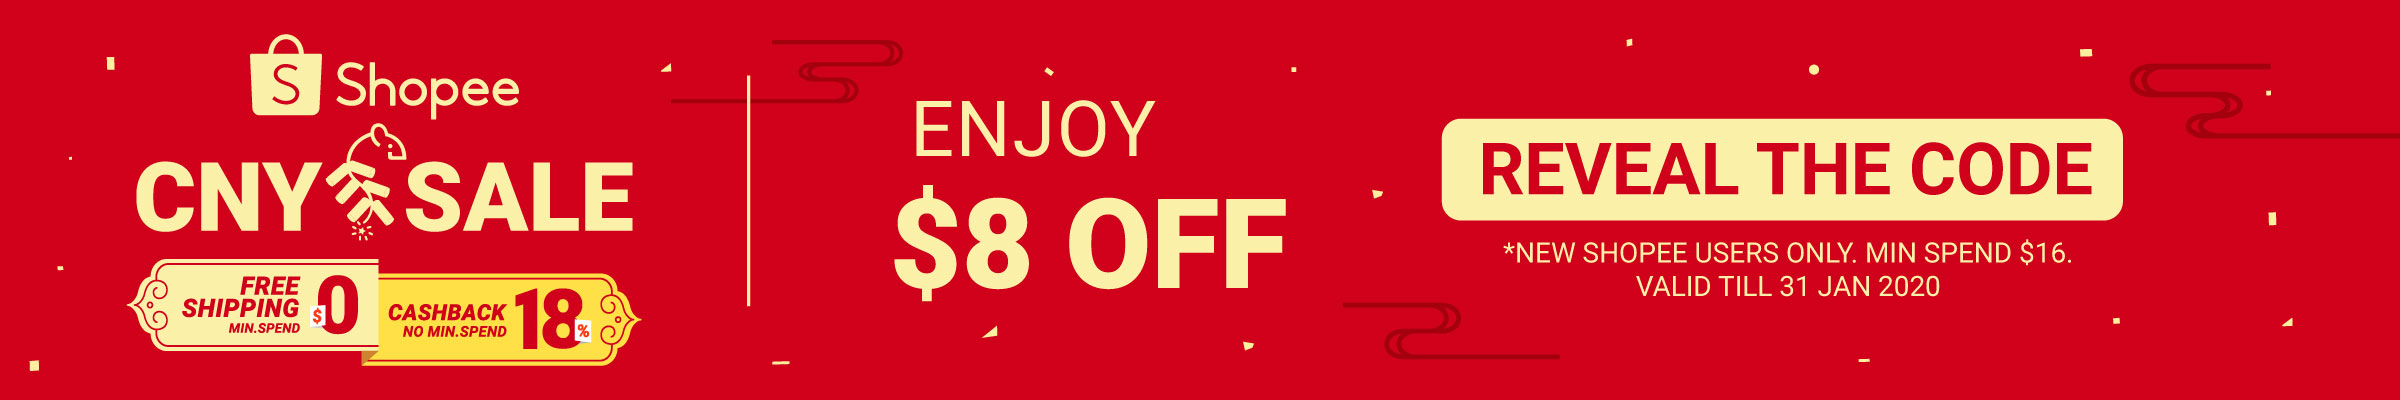 Shopee CNY Sale 2 - 31 Jan